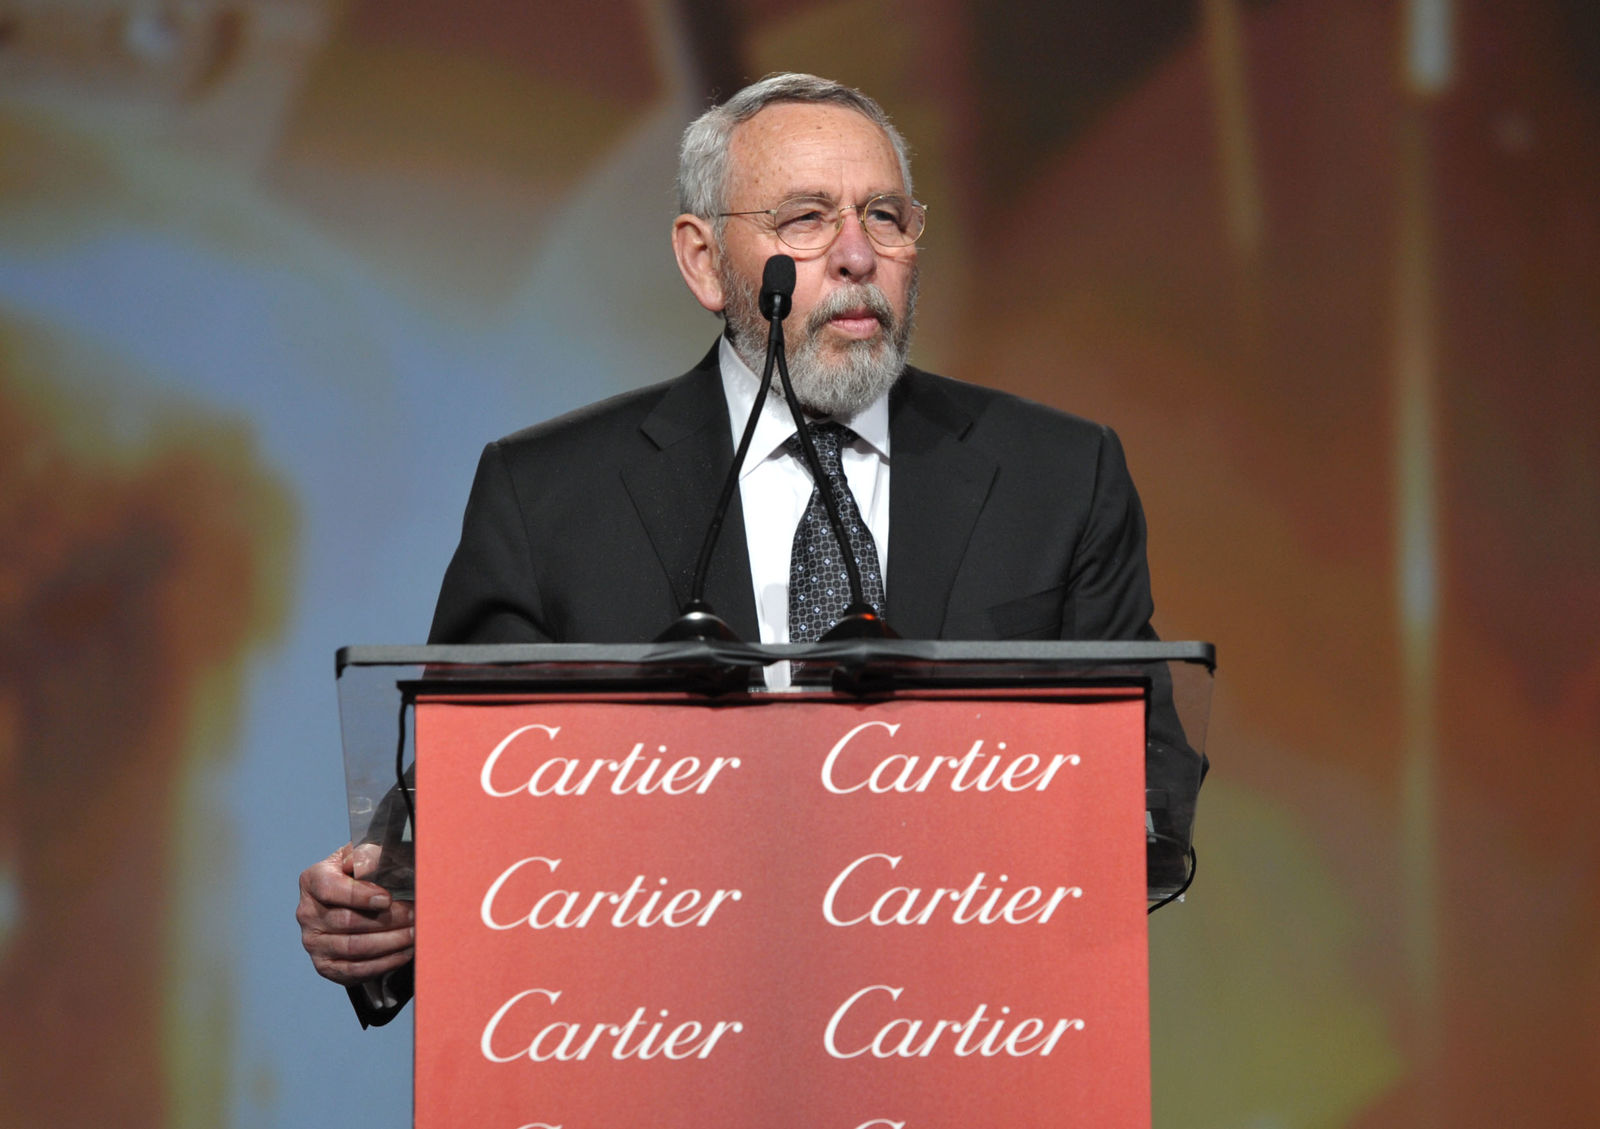 Tony Mendez appears on stage at the 24th Annual Palm Springs International Film Festival Awards Gala on Saturday, Jan. 5, 2012 in Palm Springs, Calif. The gala honors individuals in the film industry with awards for acting, directing, achievement in film scoring, and lifetime achievement. (Photo by John Shearer/Invision/AP Images)